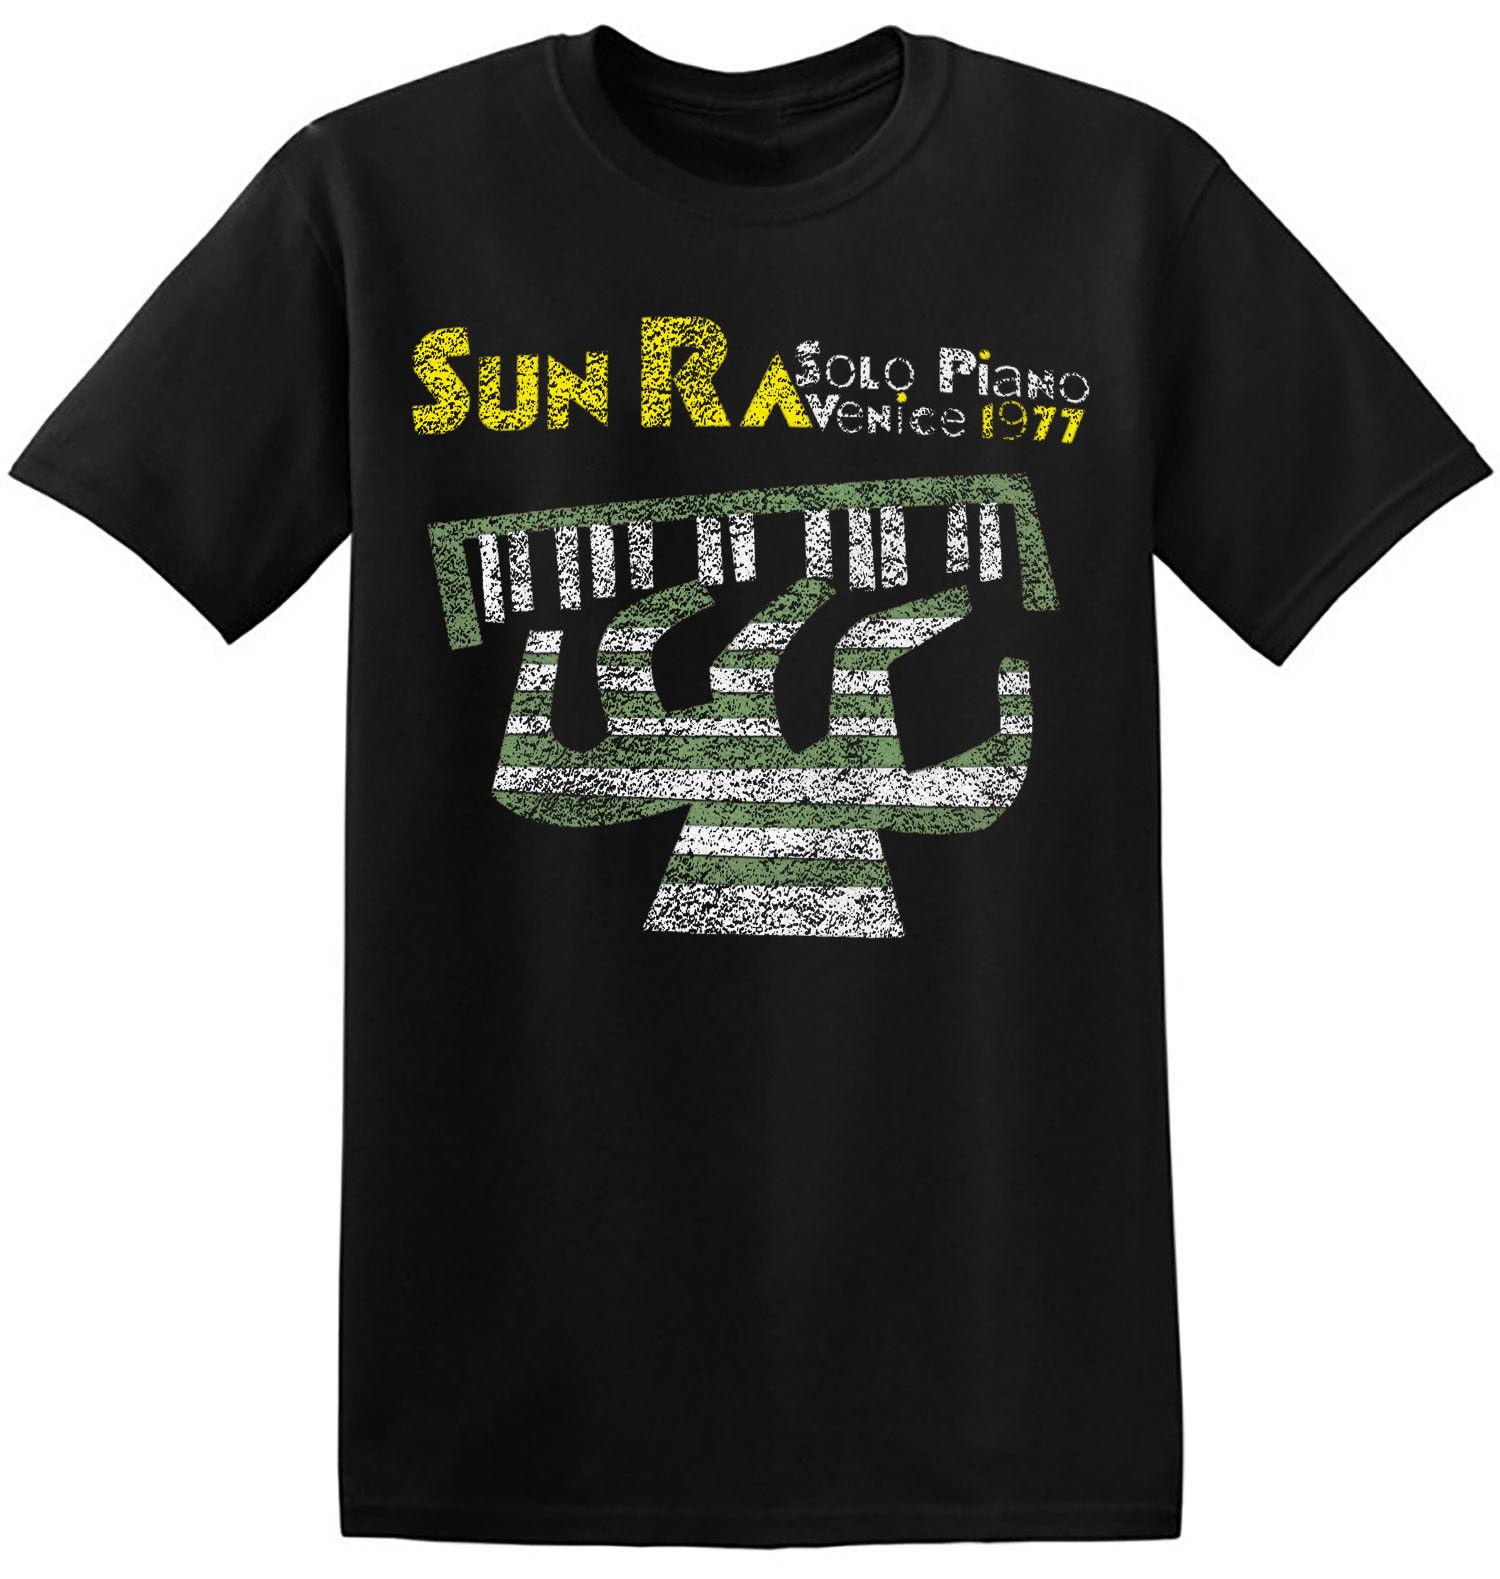 Sun Ra T Shirt Cool Retro Graphic Print New Black Jazz Music Band Tee  4-A-063 2018 funny tee 100% cotton cool lovely summer t-shirt